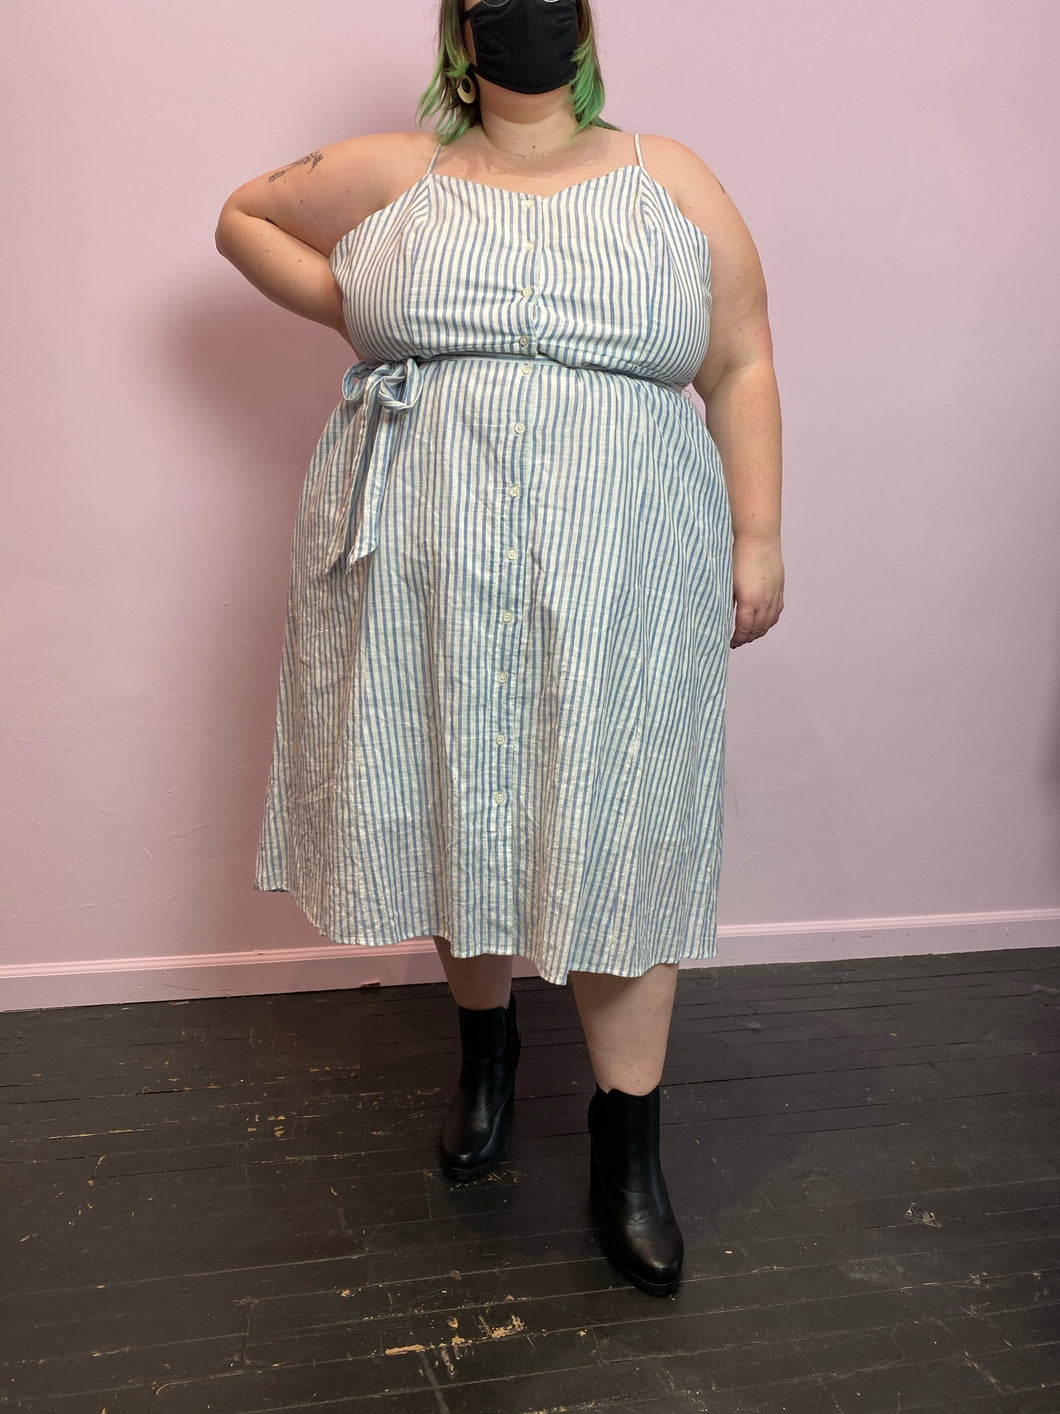 Blue and Whit Striped Who What Wear Dress, Size 4X